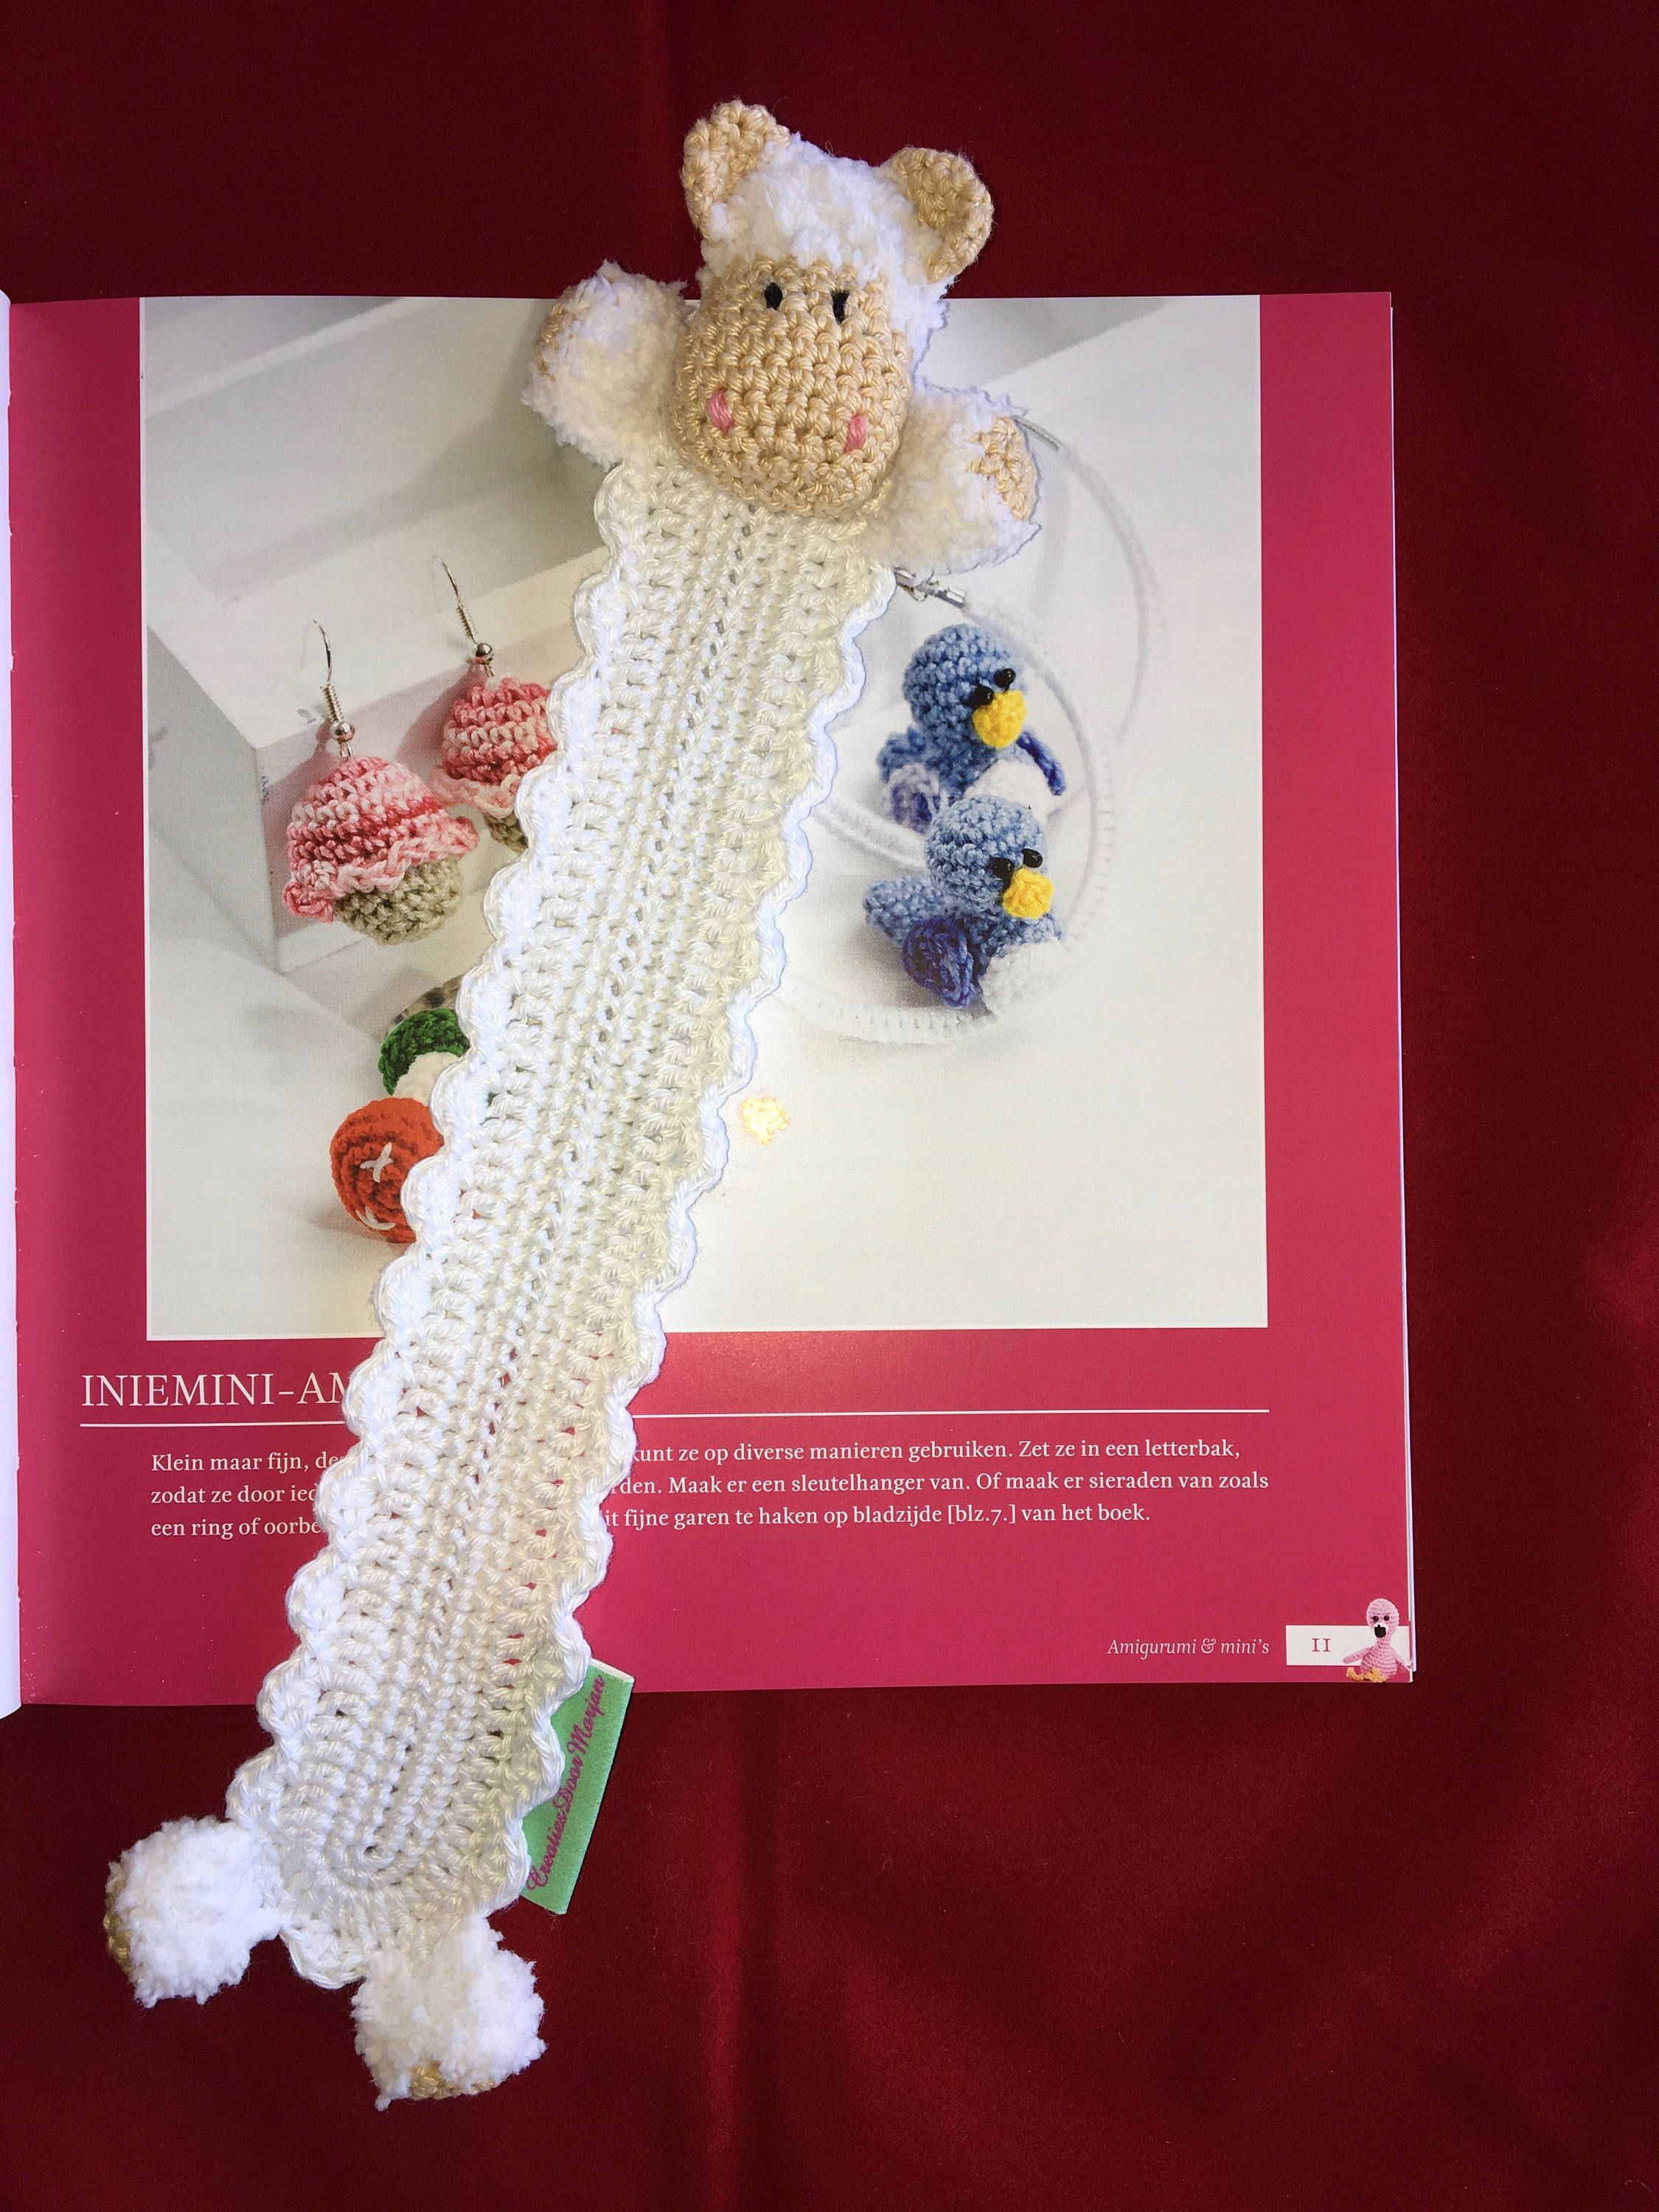 Bookmarks/bookmark with woolly sheep